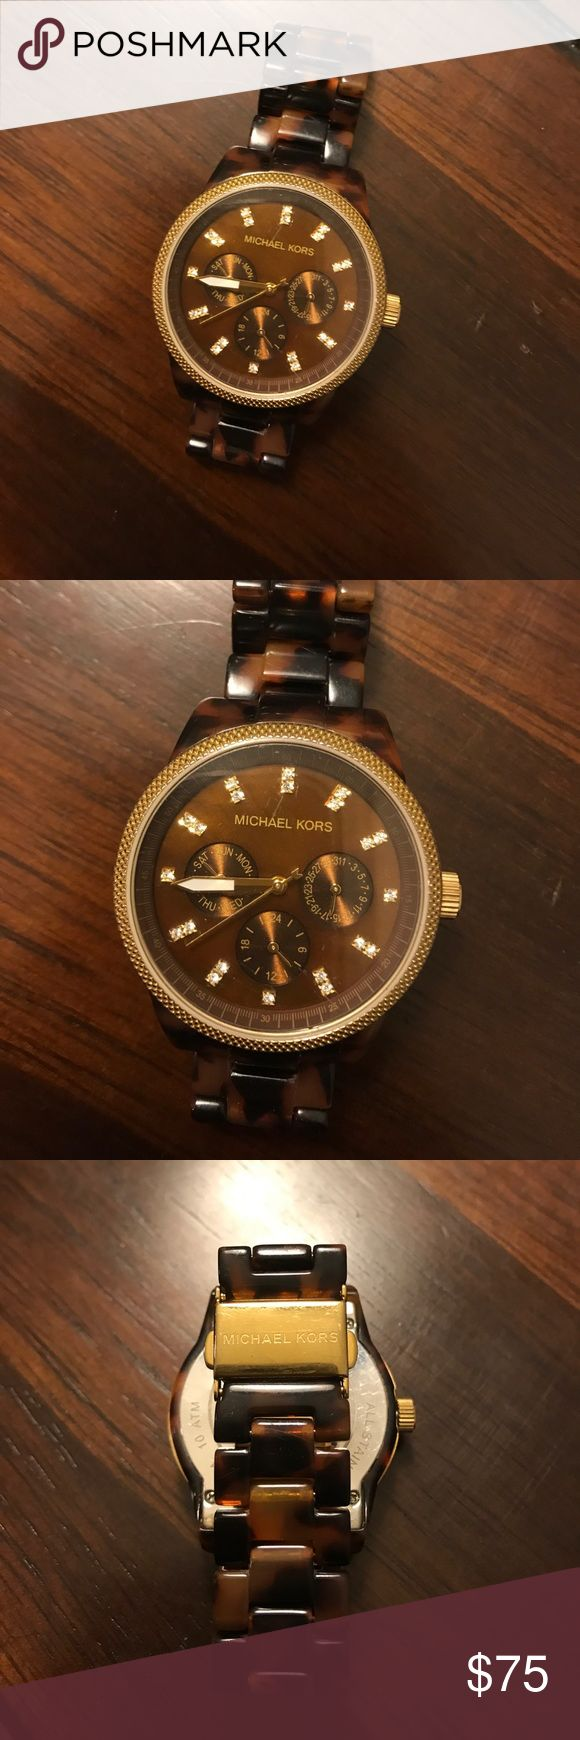 Authentic Michael Kors tortoise watch Gently used, excellent condition! Minor scratches from wear but everything is pictured 🎉 accepting reasonable offers! Battery DOES work Michael Kors Accessories Watches